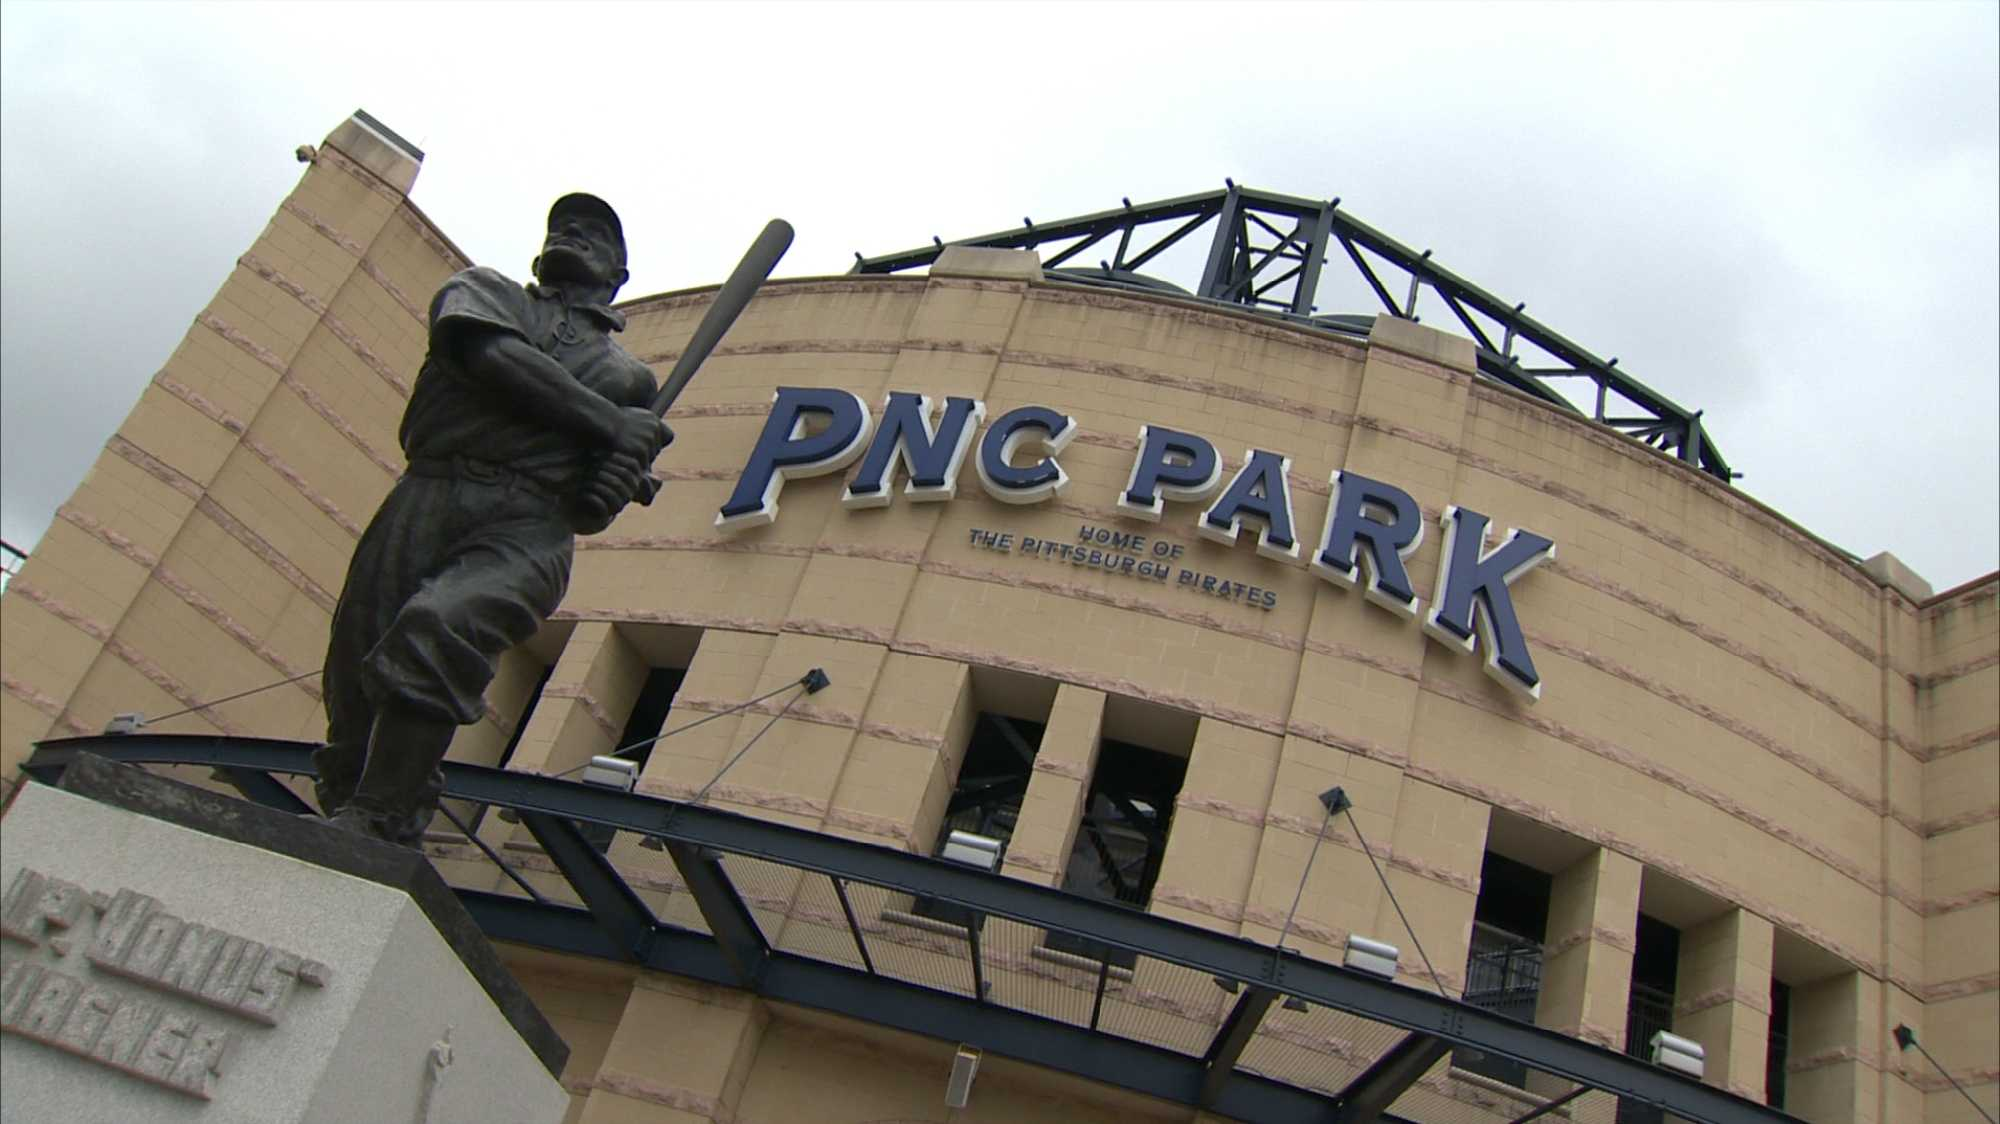 PITTSBURGH ASSOCIATES (Pirates, PNC Park, Honus Wagner statue)